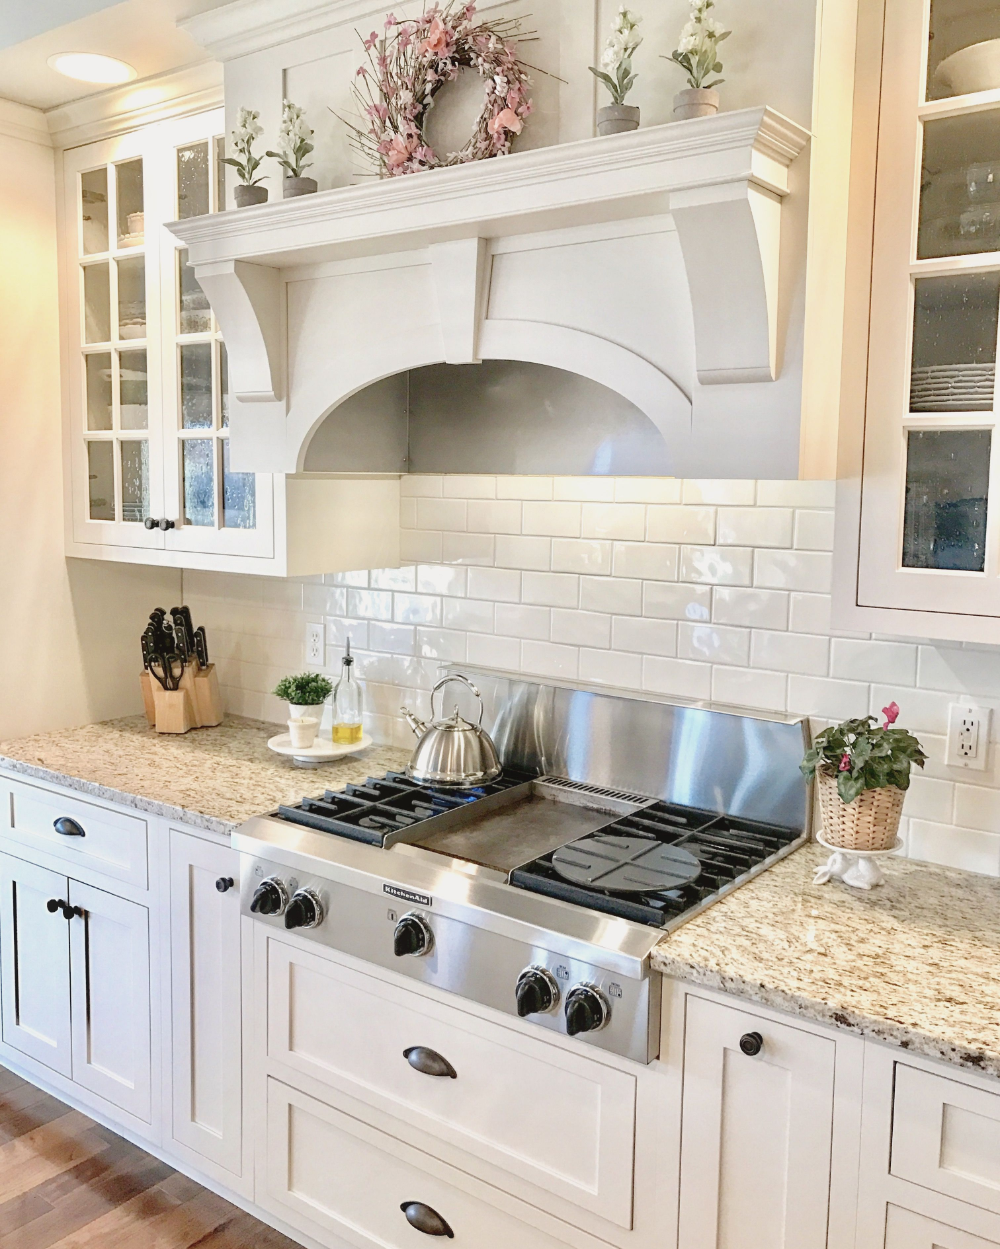 Antique White Kitchen Cabinets My Farmhouse In 2019 Antique White Kitchen Off White Kitchen Cabinets Country Kitchen Designs